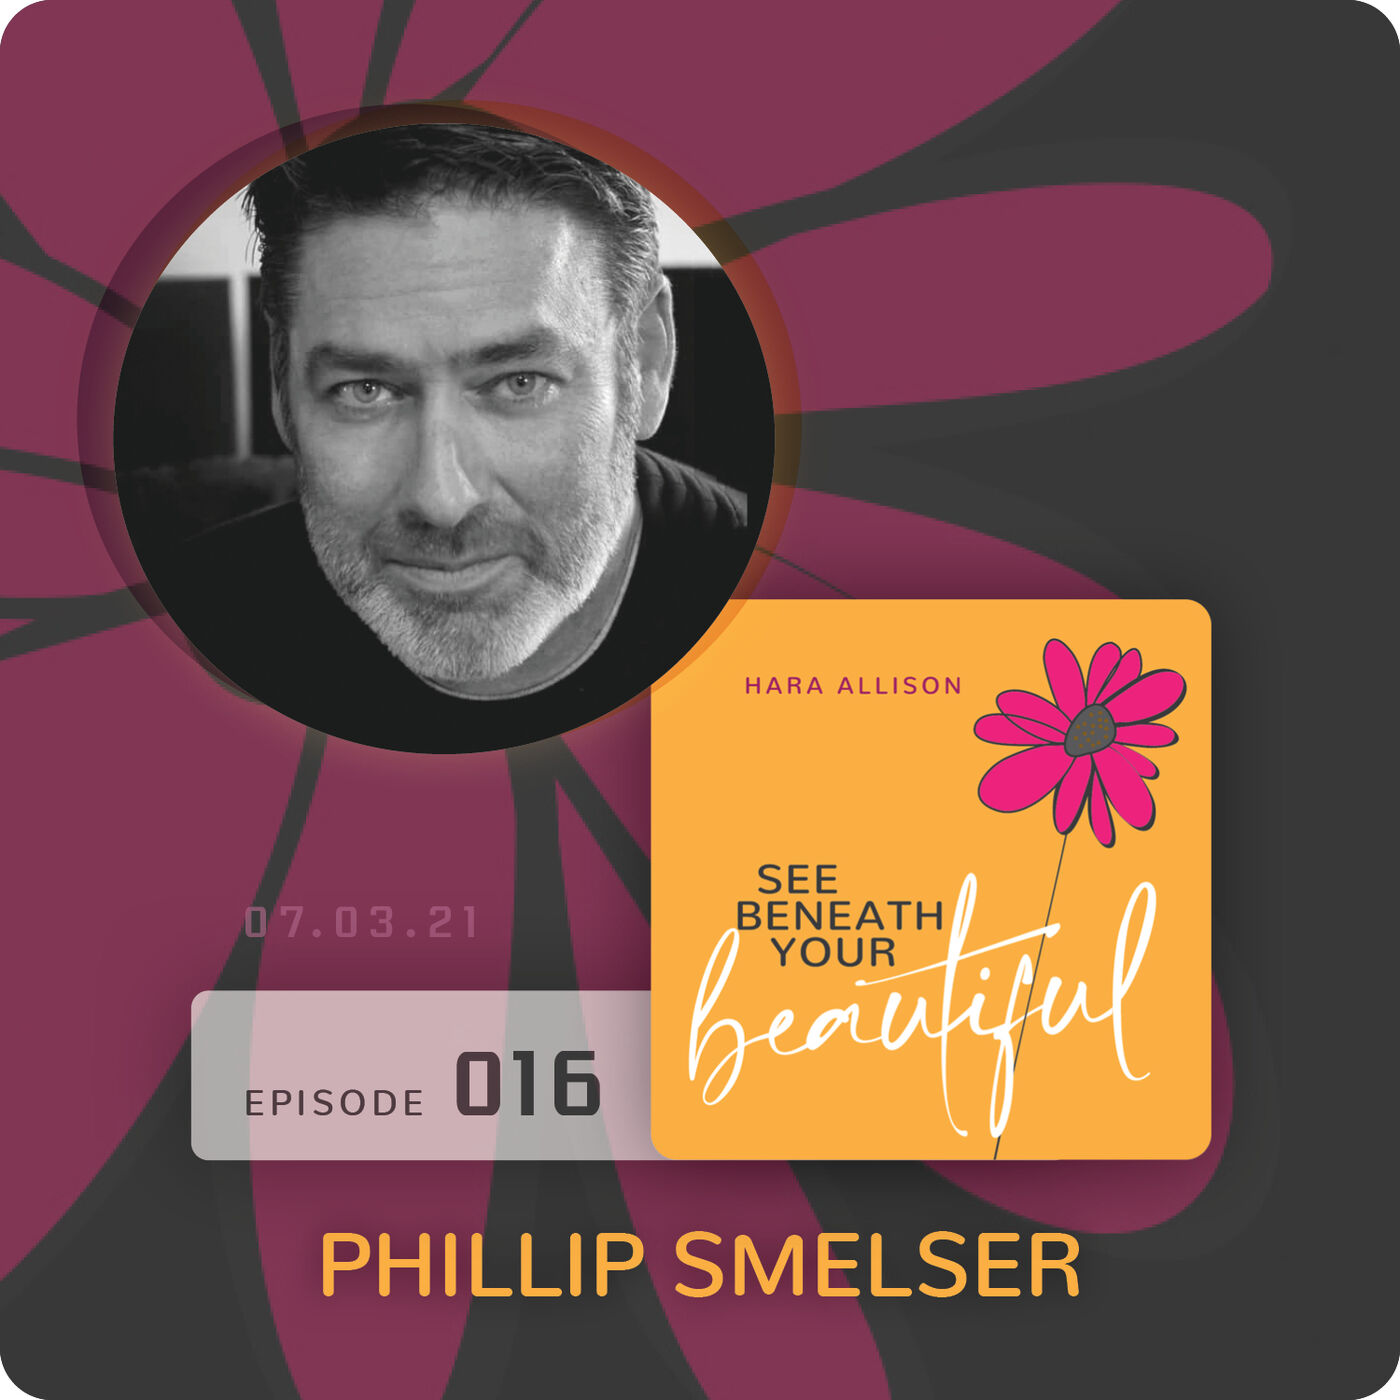 """016. Phillip Smelser discusses being """"very organized"""", super shy as a kid, a Coast Guard veteran, visiting the North Pole, playing kick the can with Russian kids, a faithful fan of auto racing and Zeppelin, a magna cum laude graduate and sobriety"""